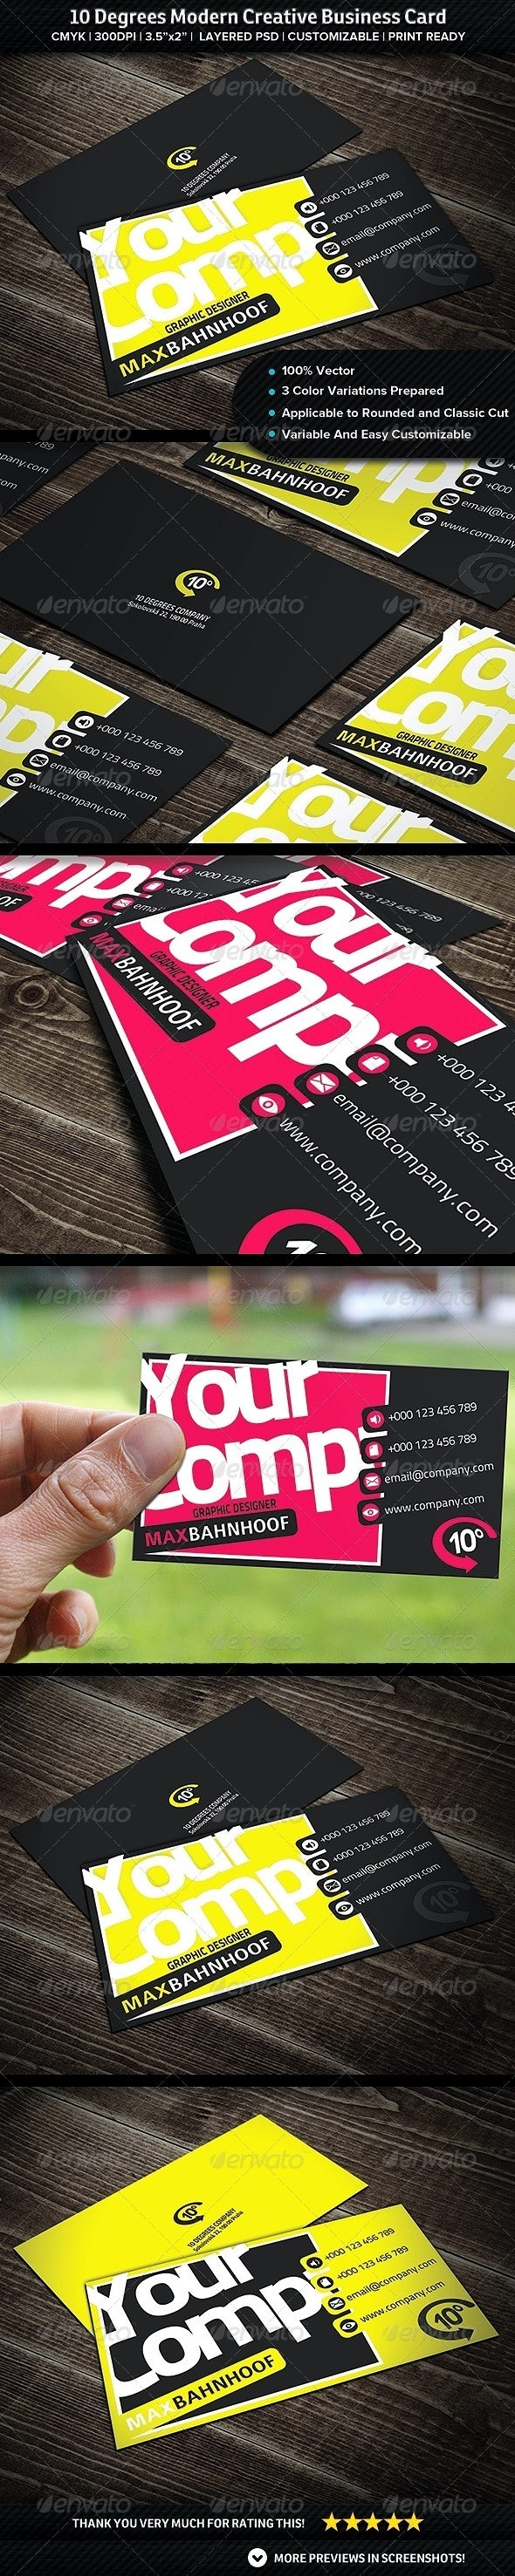 10 Degrees Modern Creative Business Card - Creative Business Cards